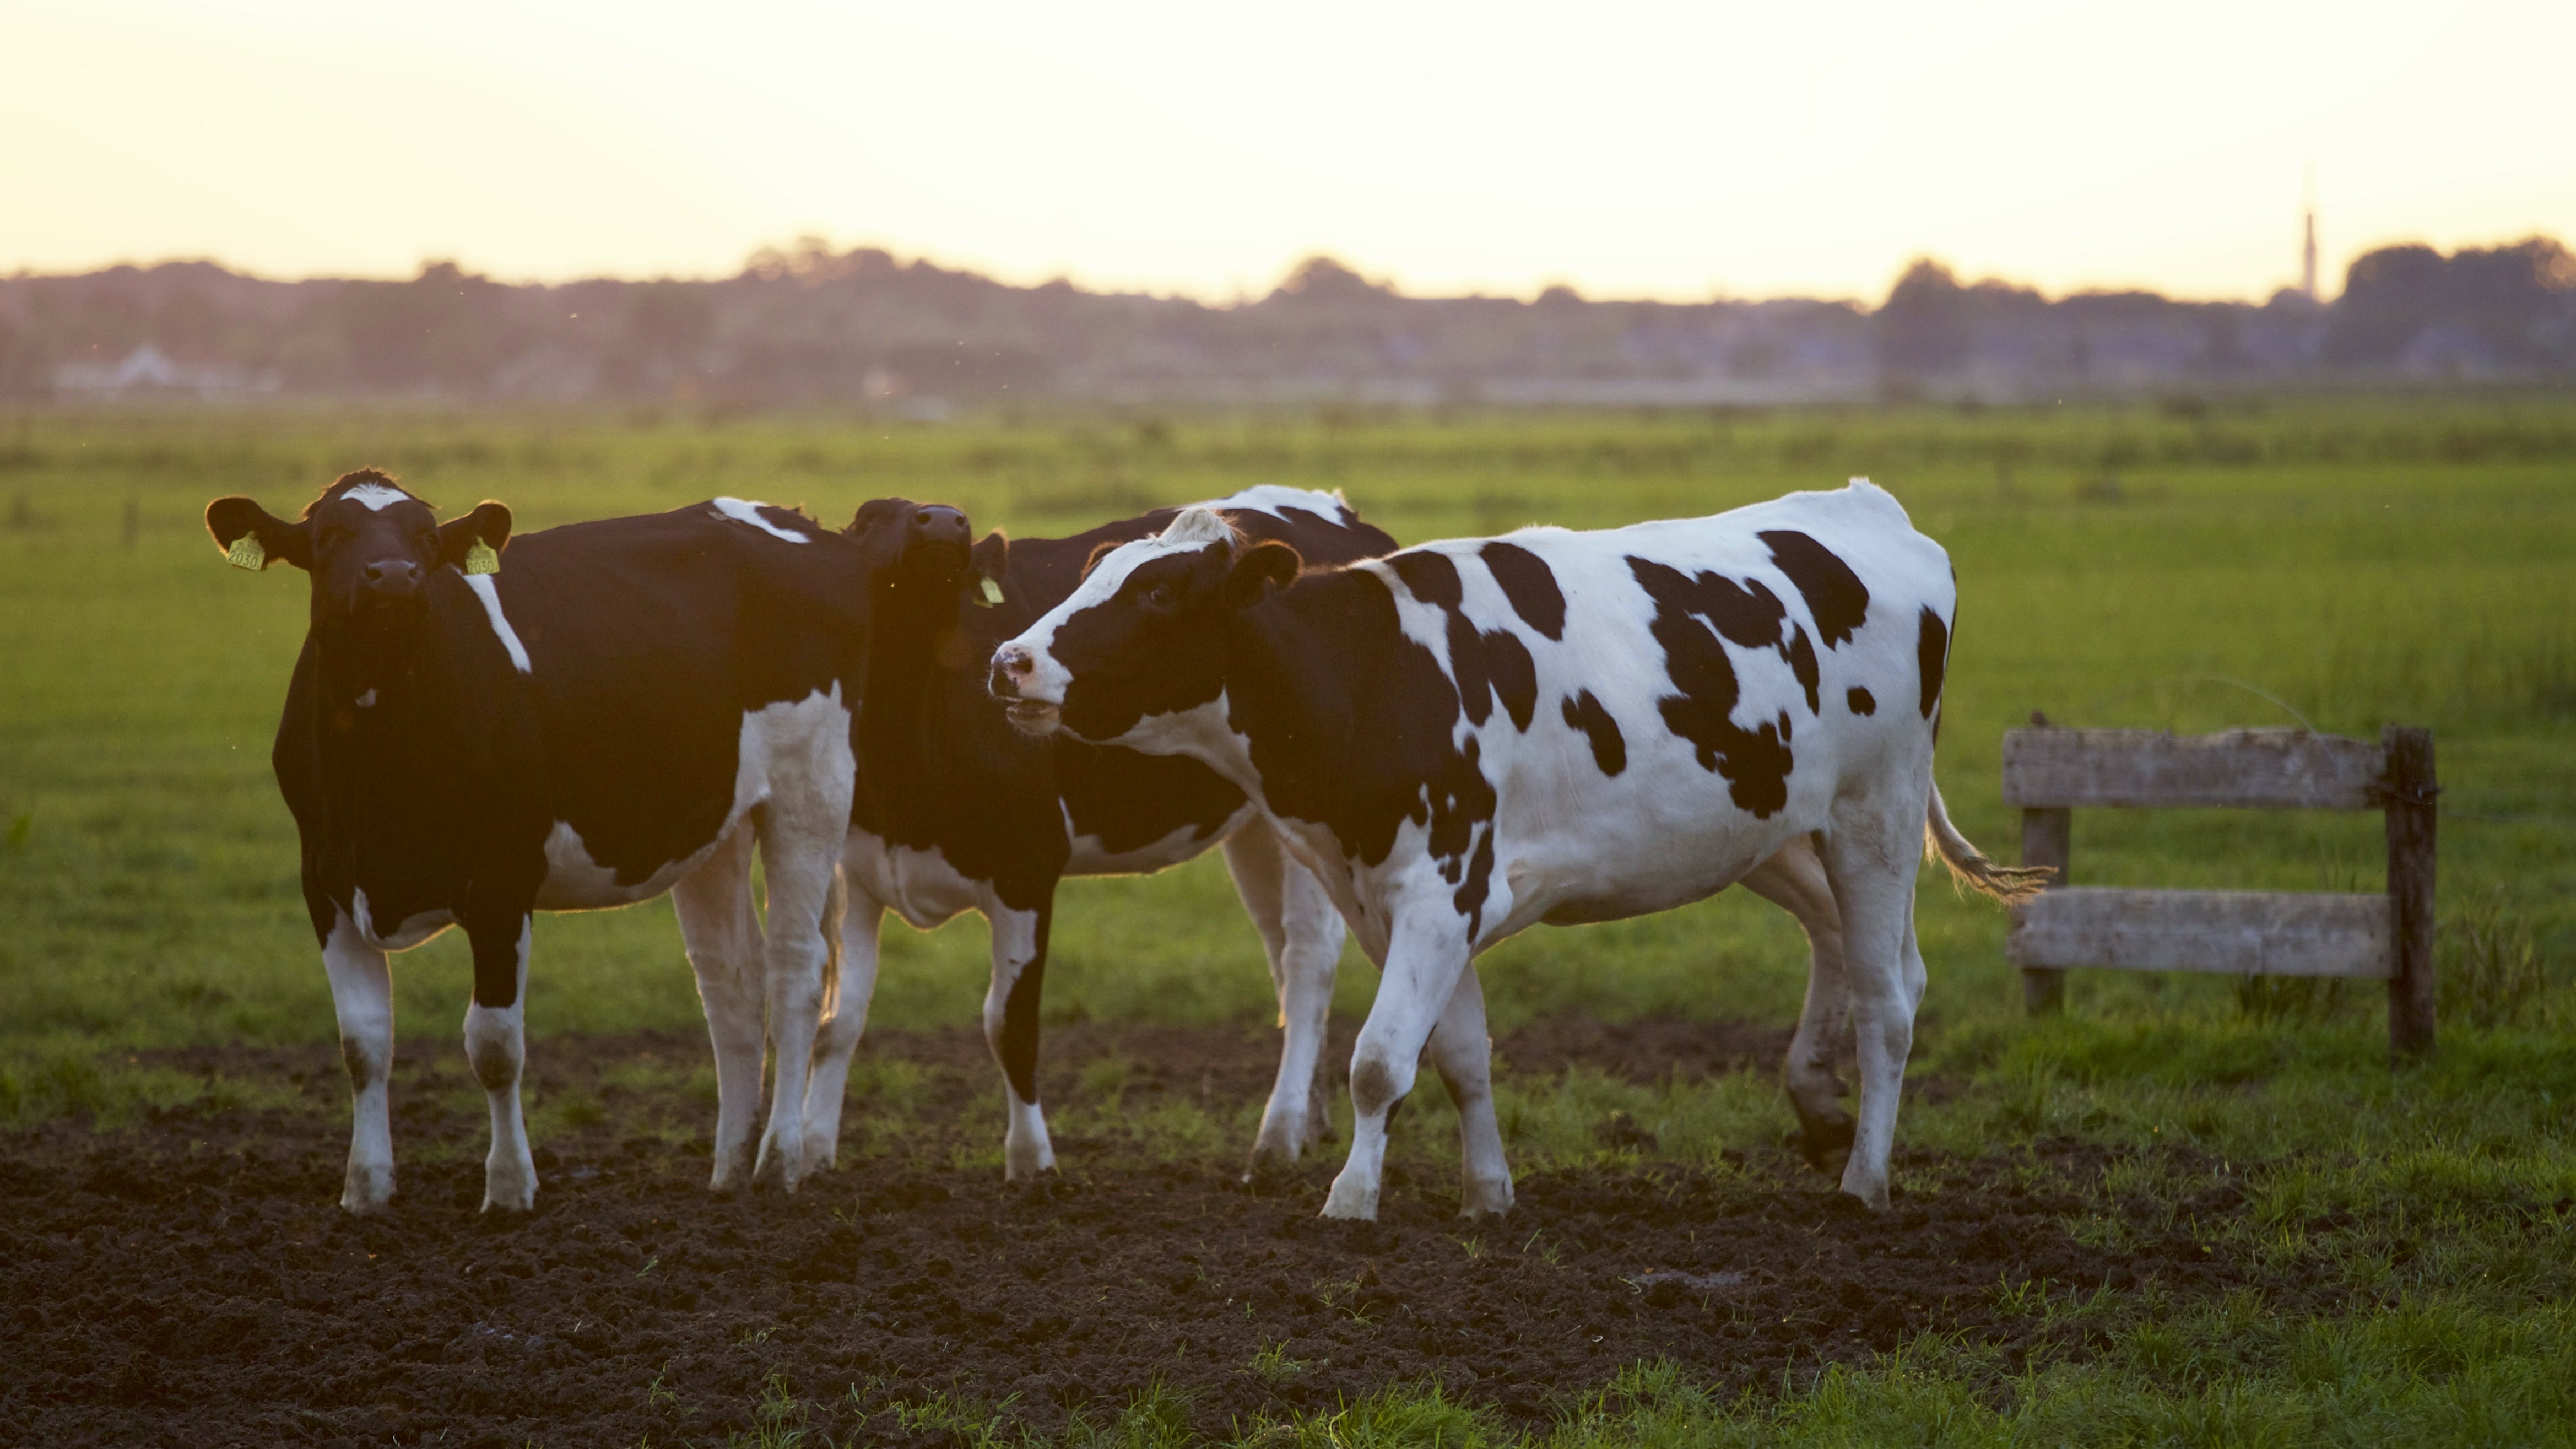 Three Black-and-white Cows